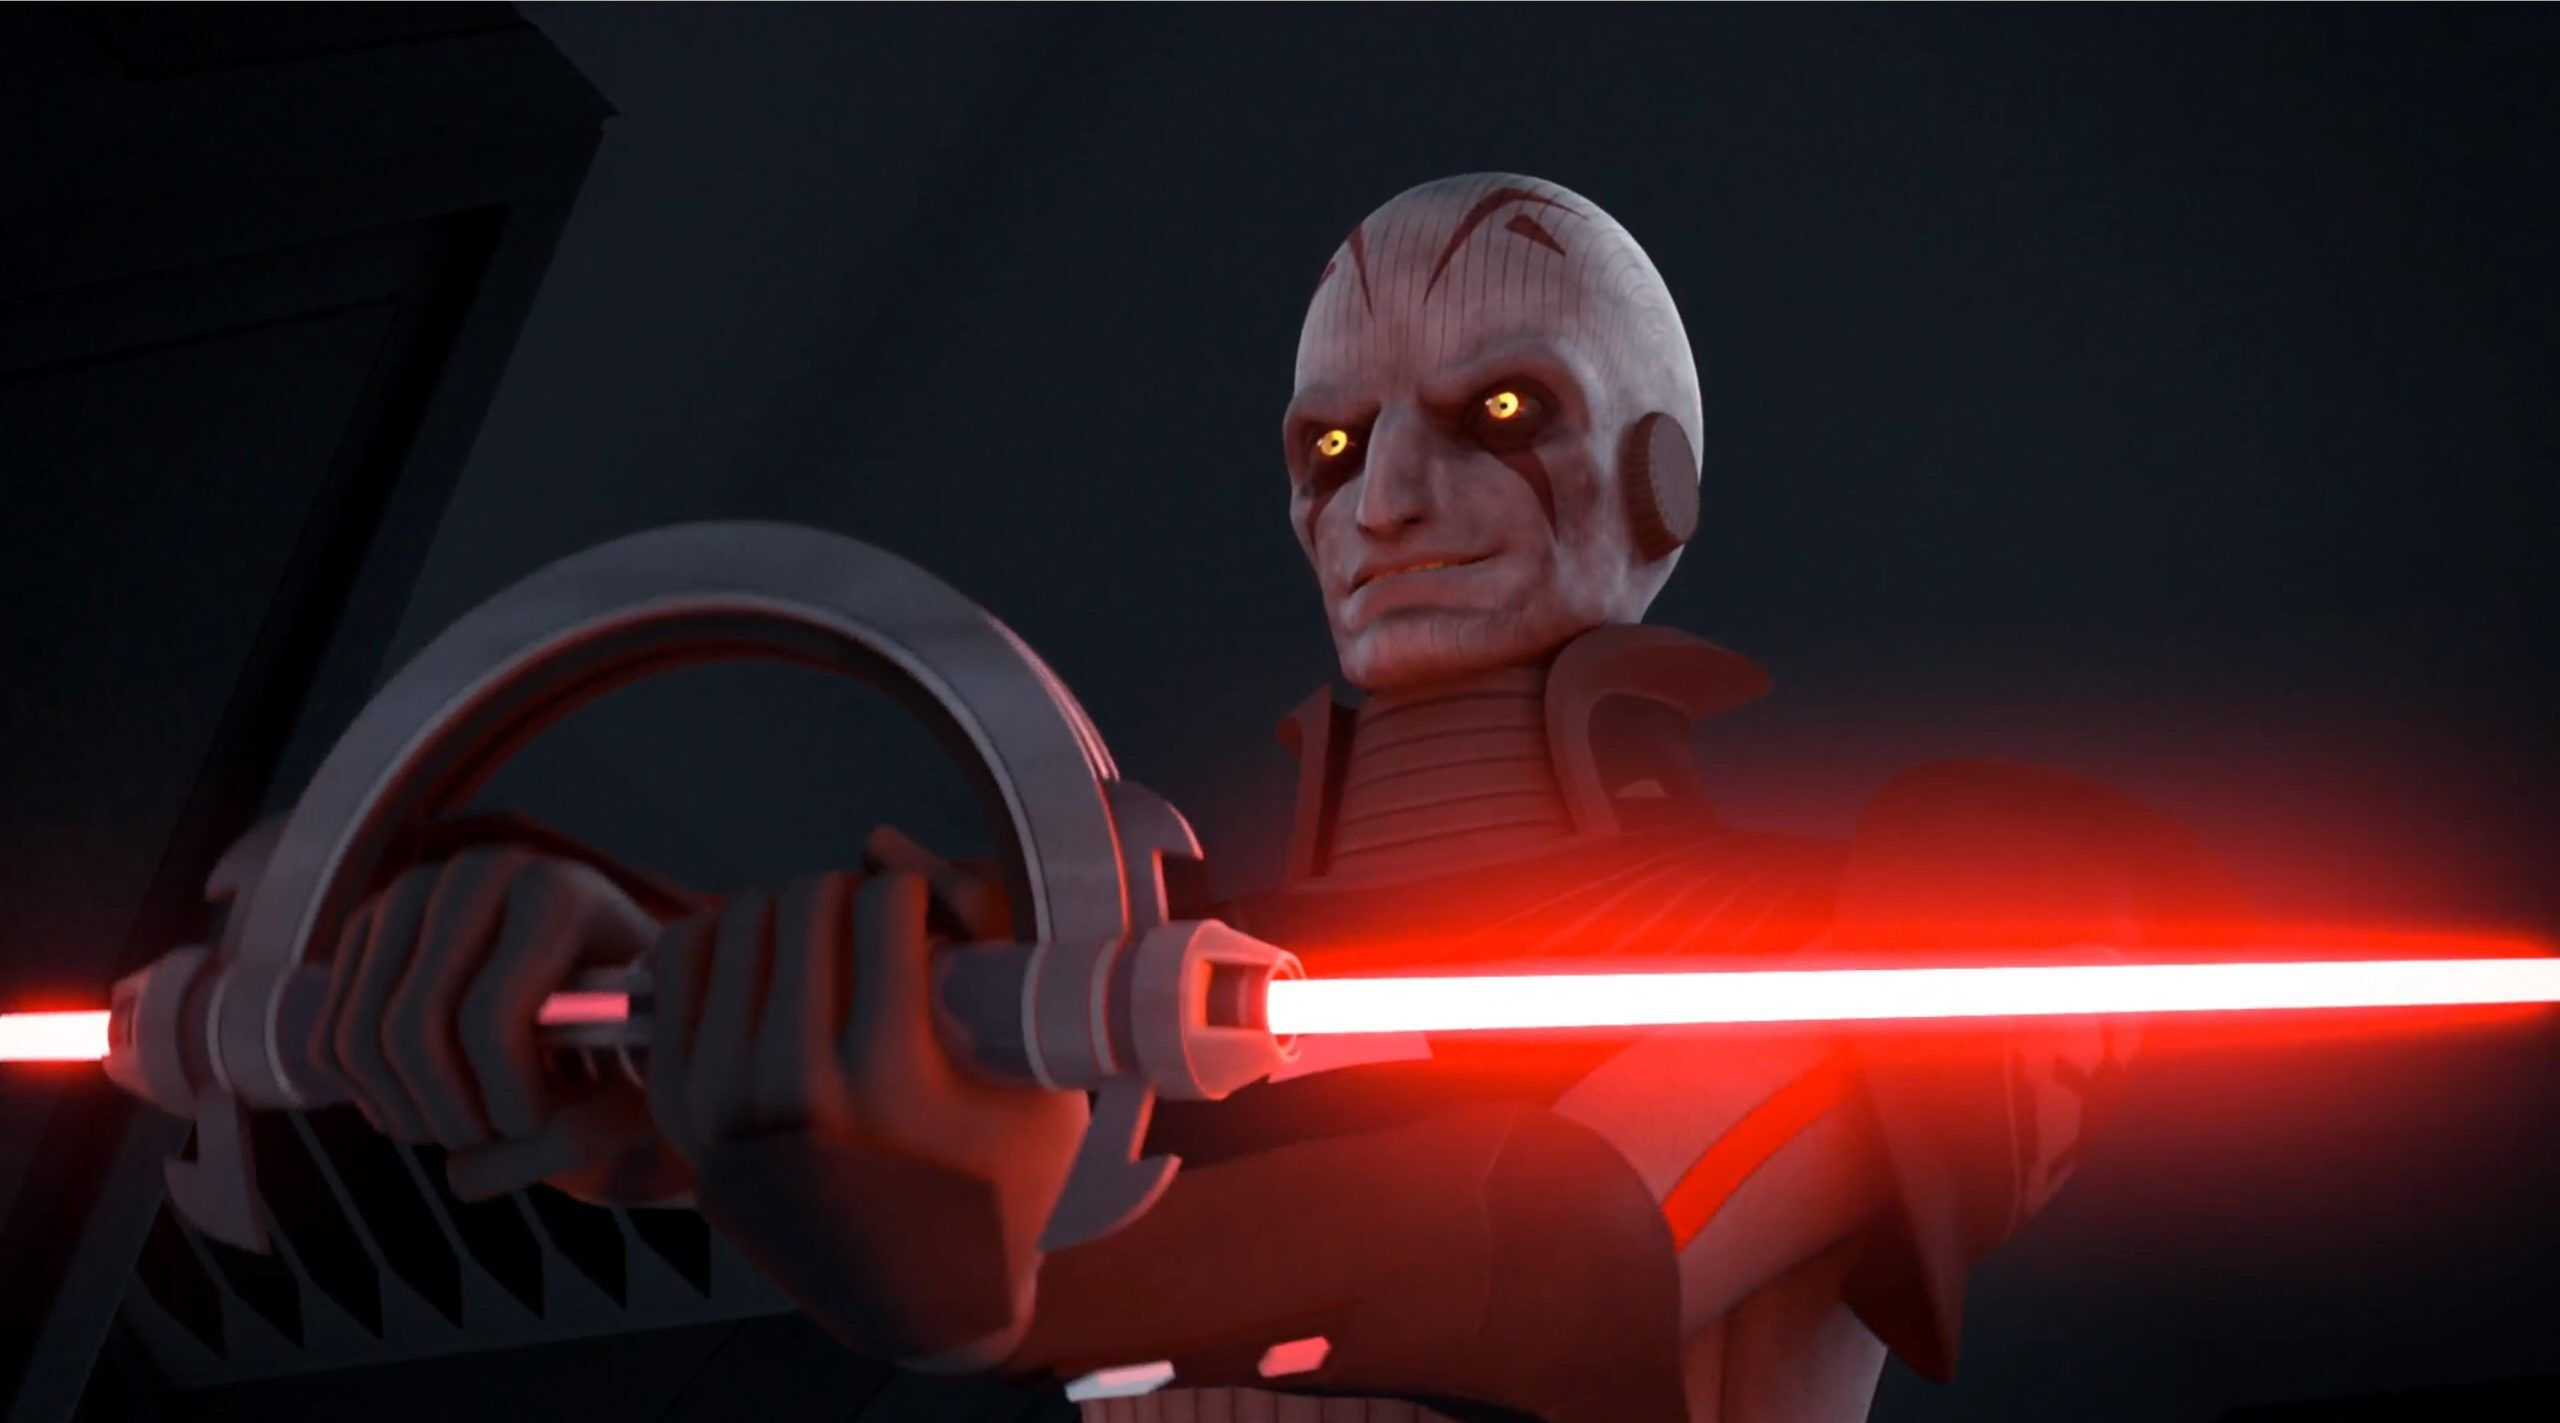 The Grand Inquisitor Star Wars Rebels